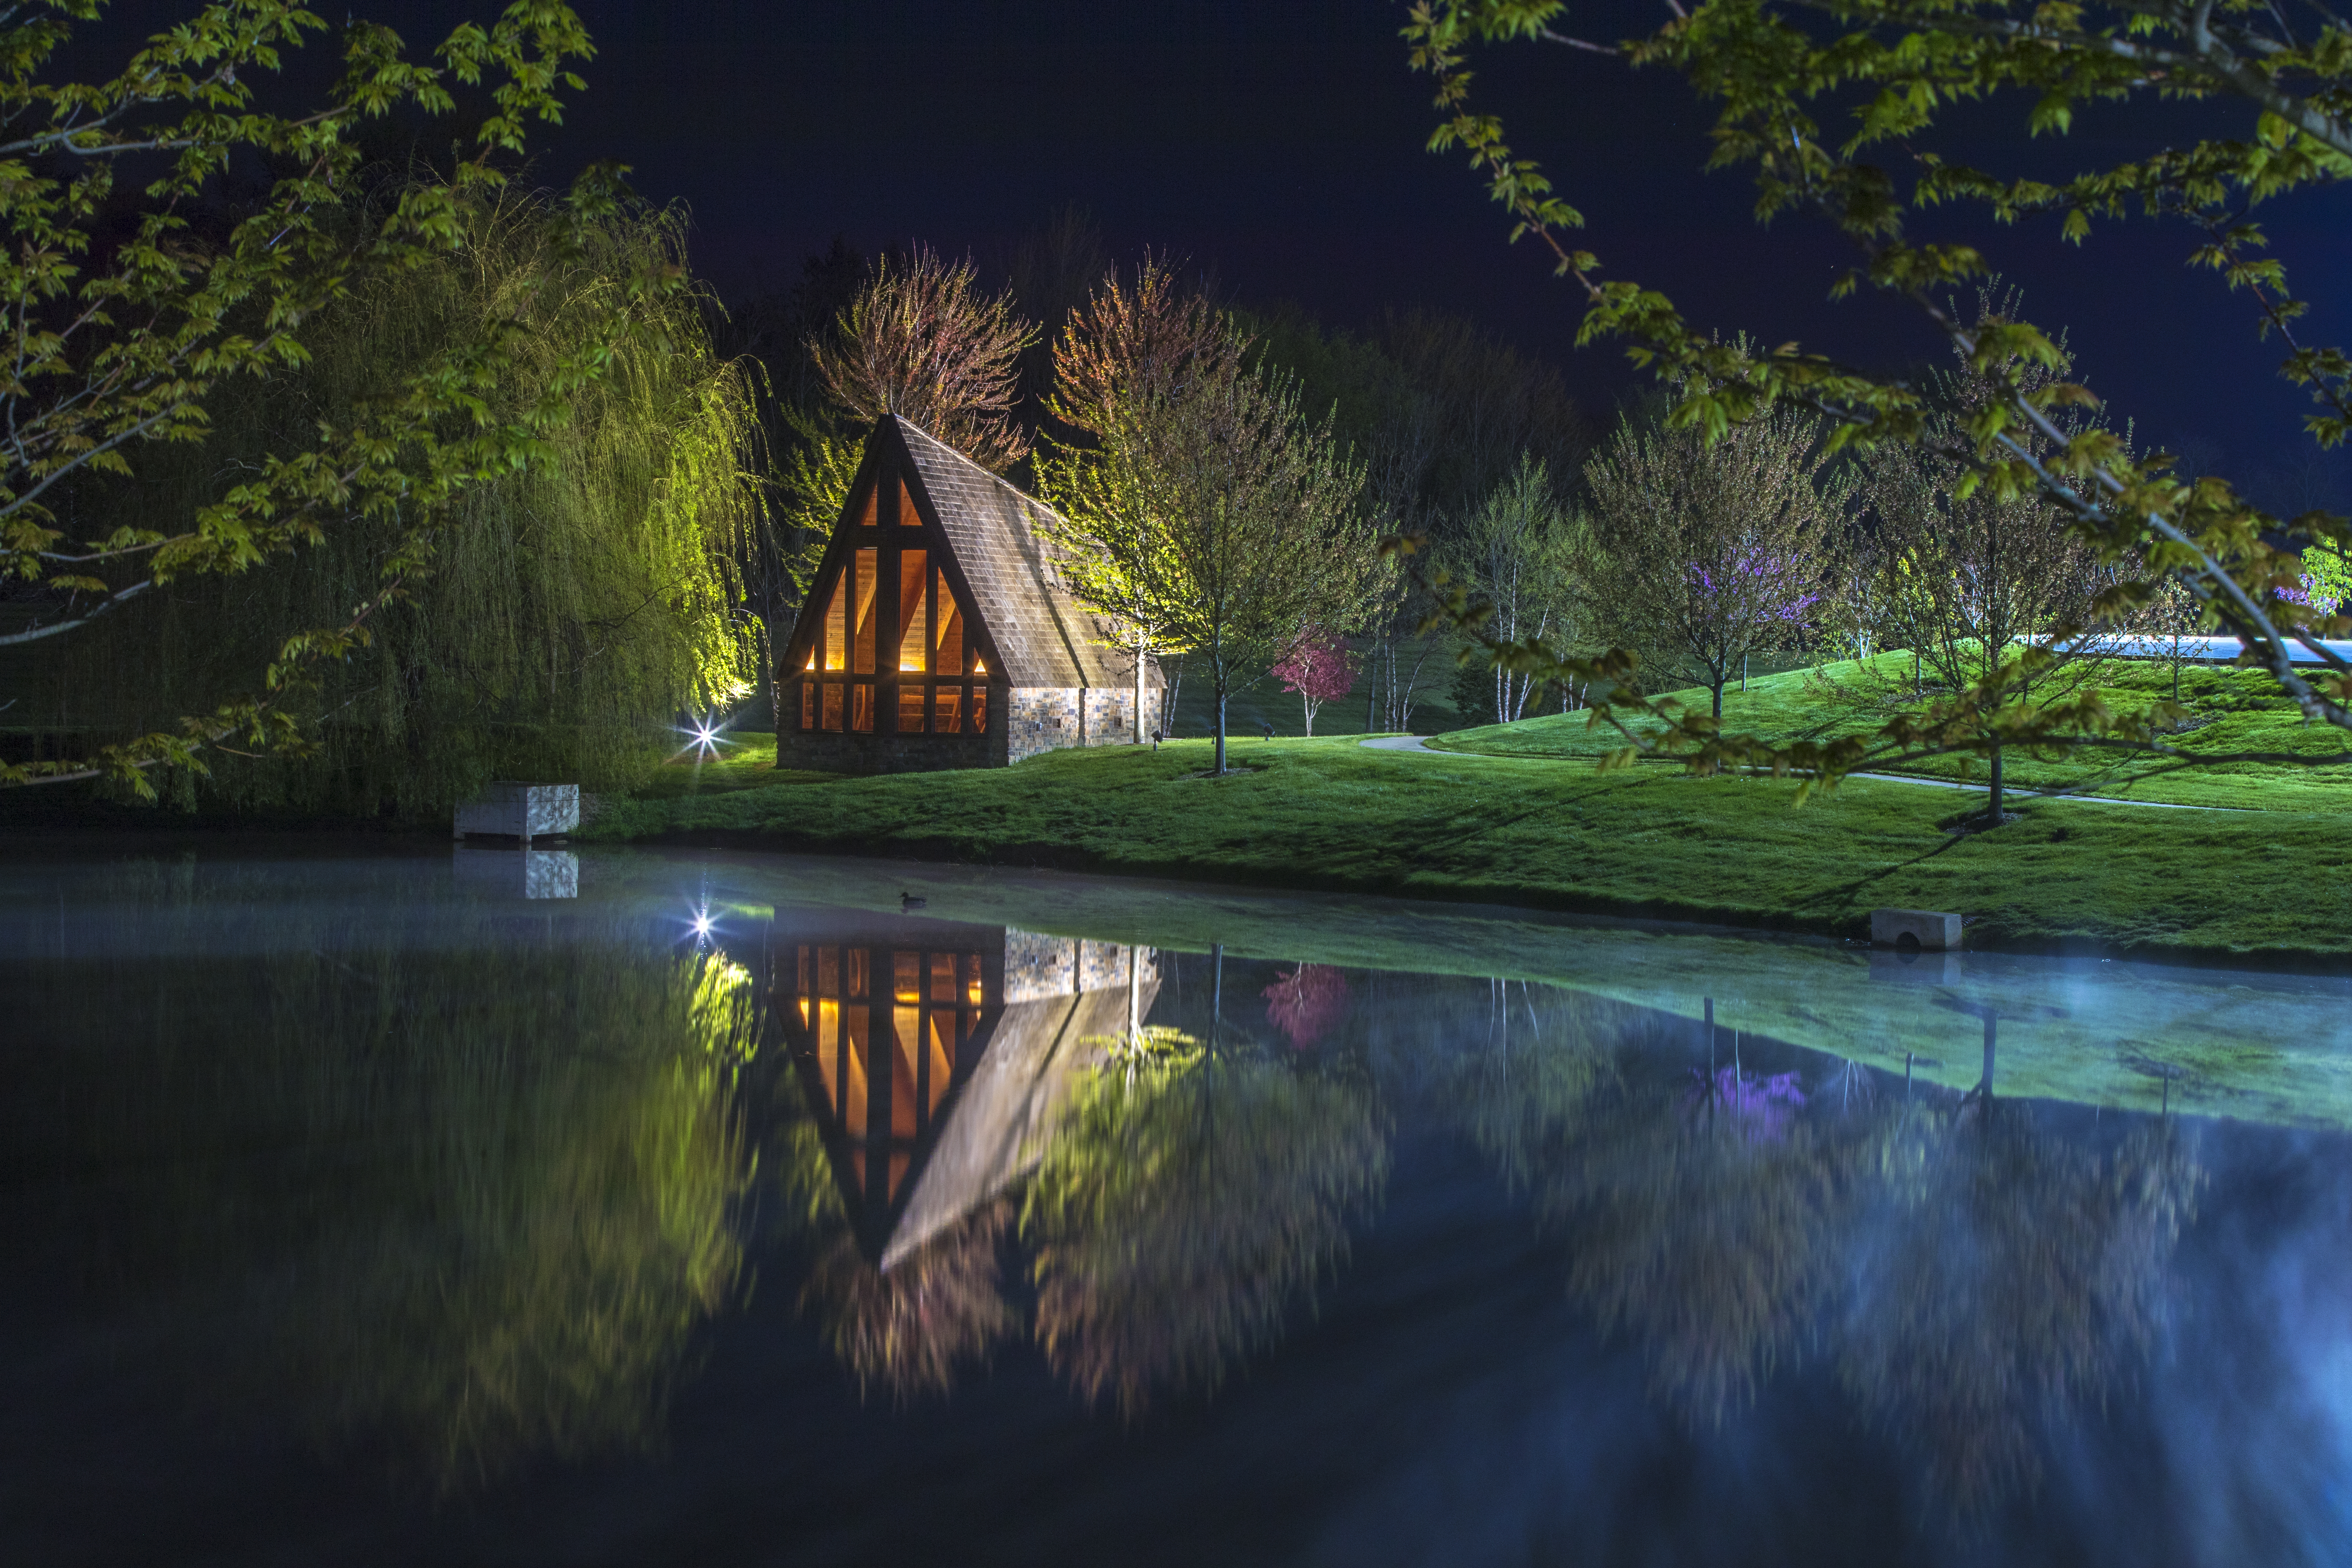 General 5472x3648 landscape nature water lake trees grass night house reflection sky cabin